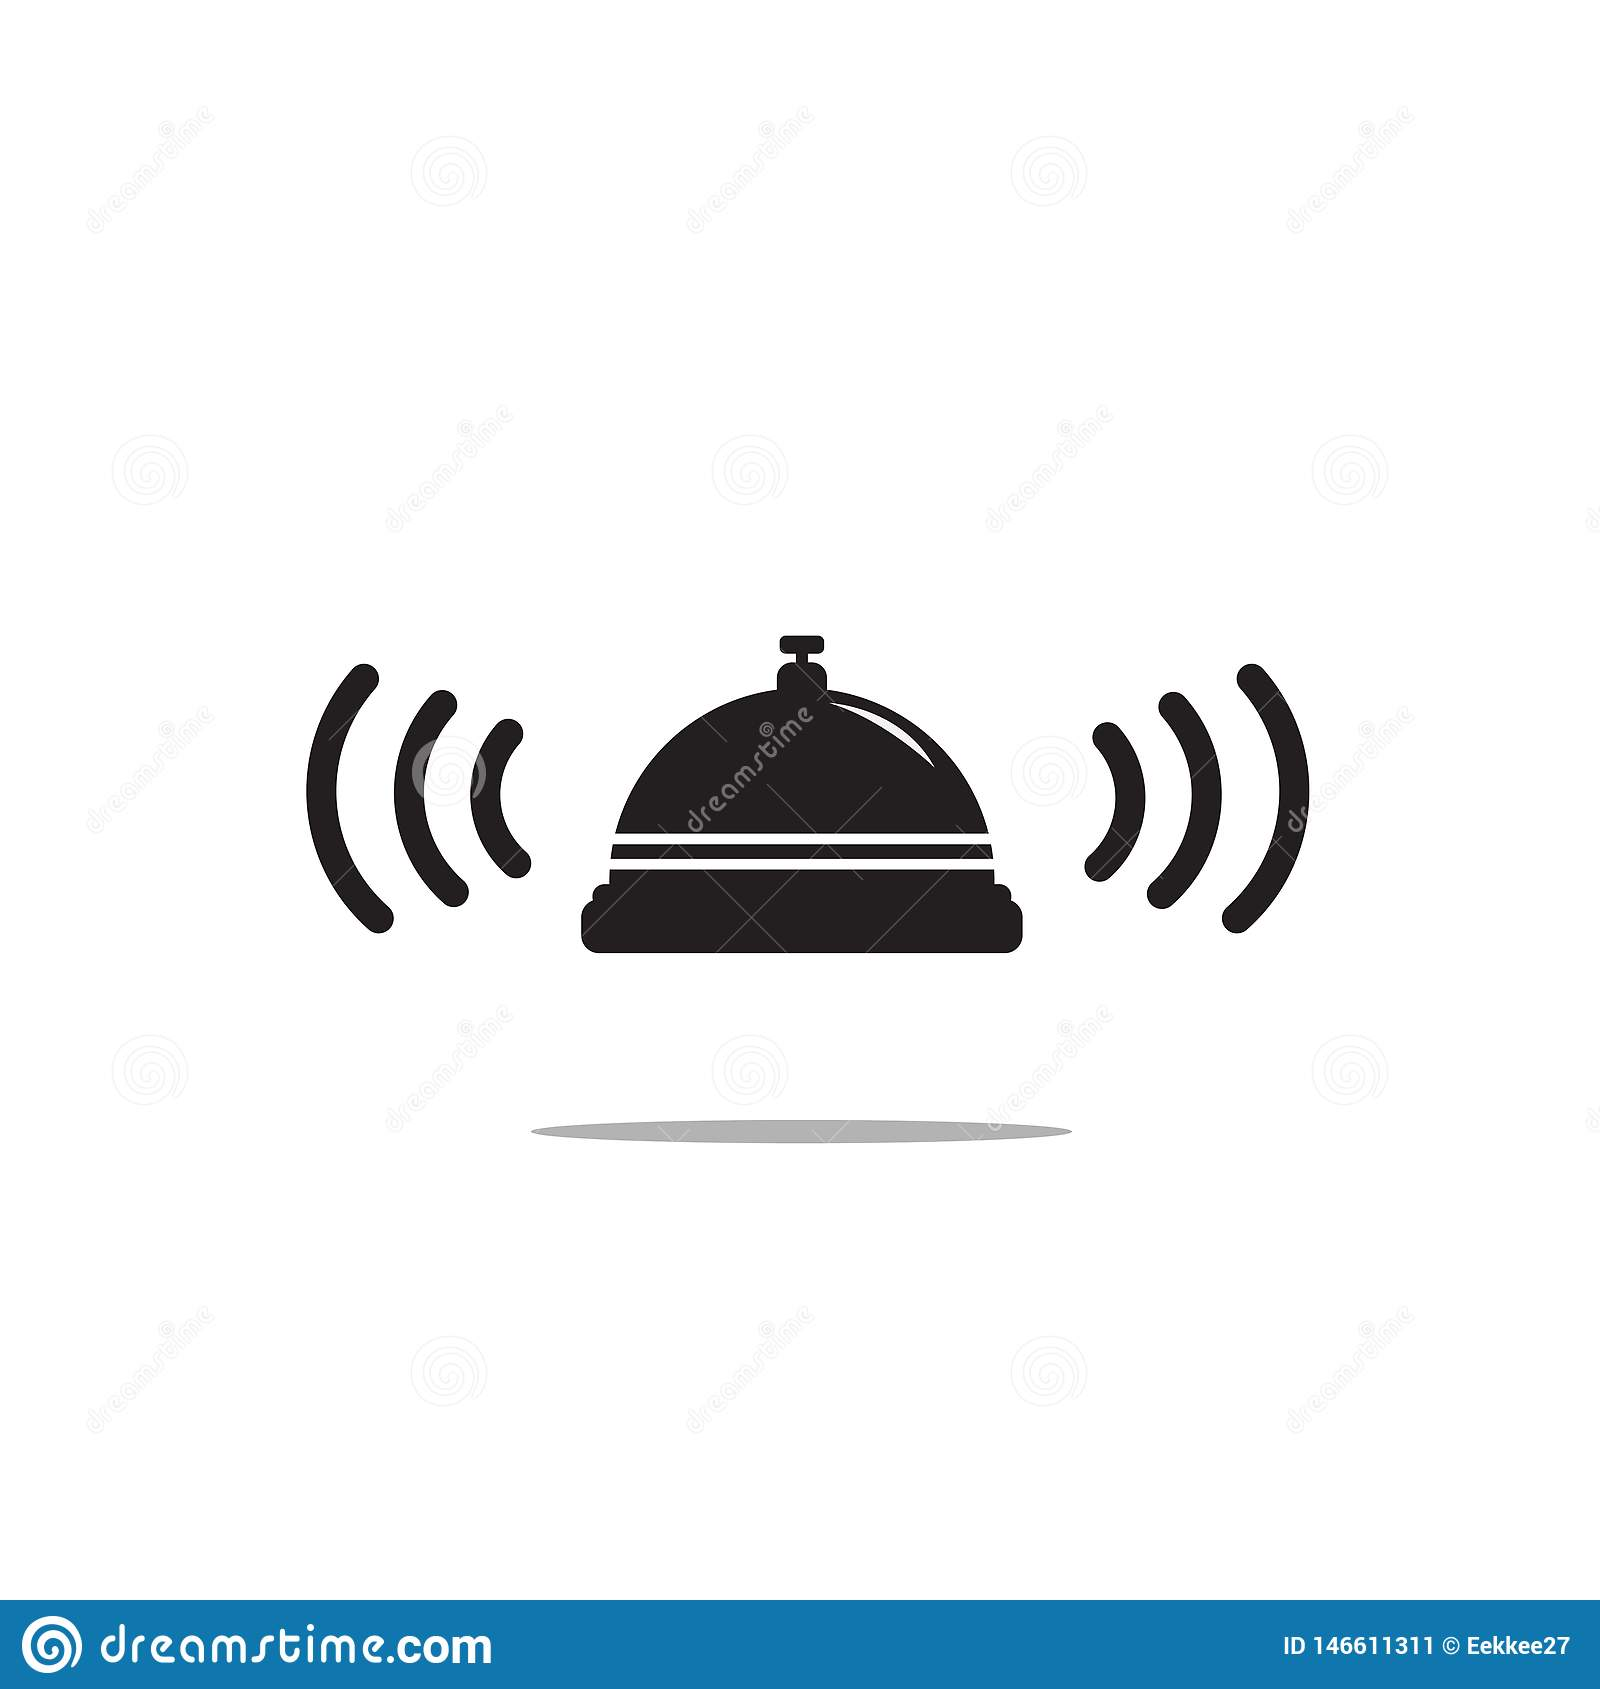 Bell icon on white background. Vector art